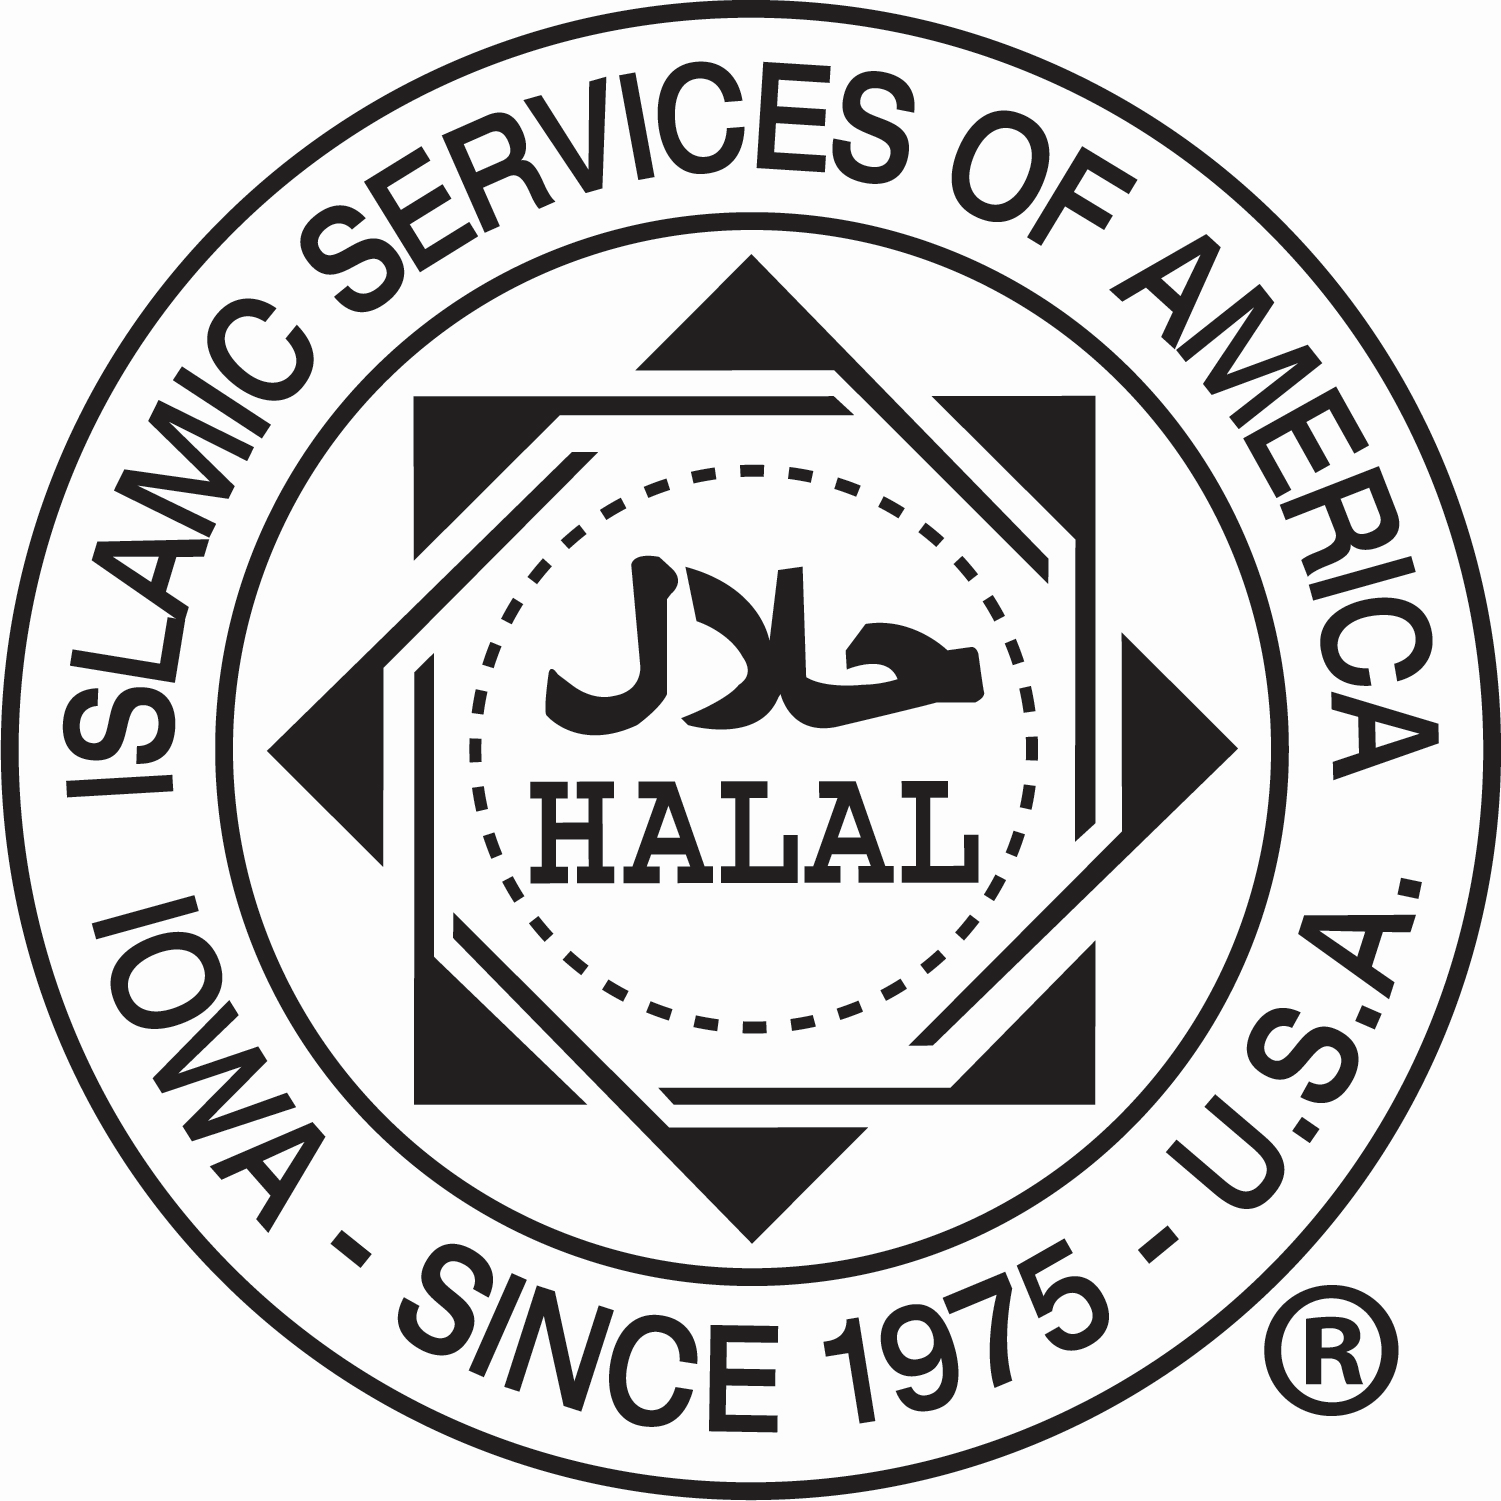 Islamic Services of America's halal-certified seal 2.